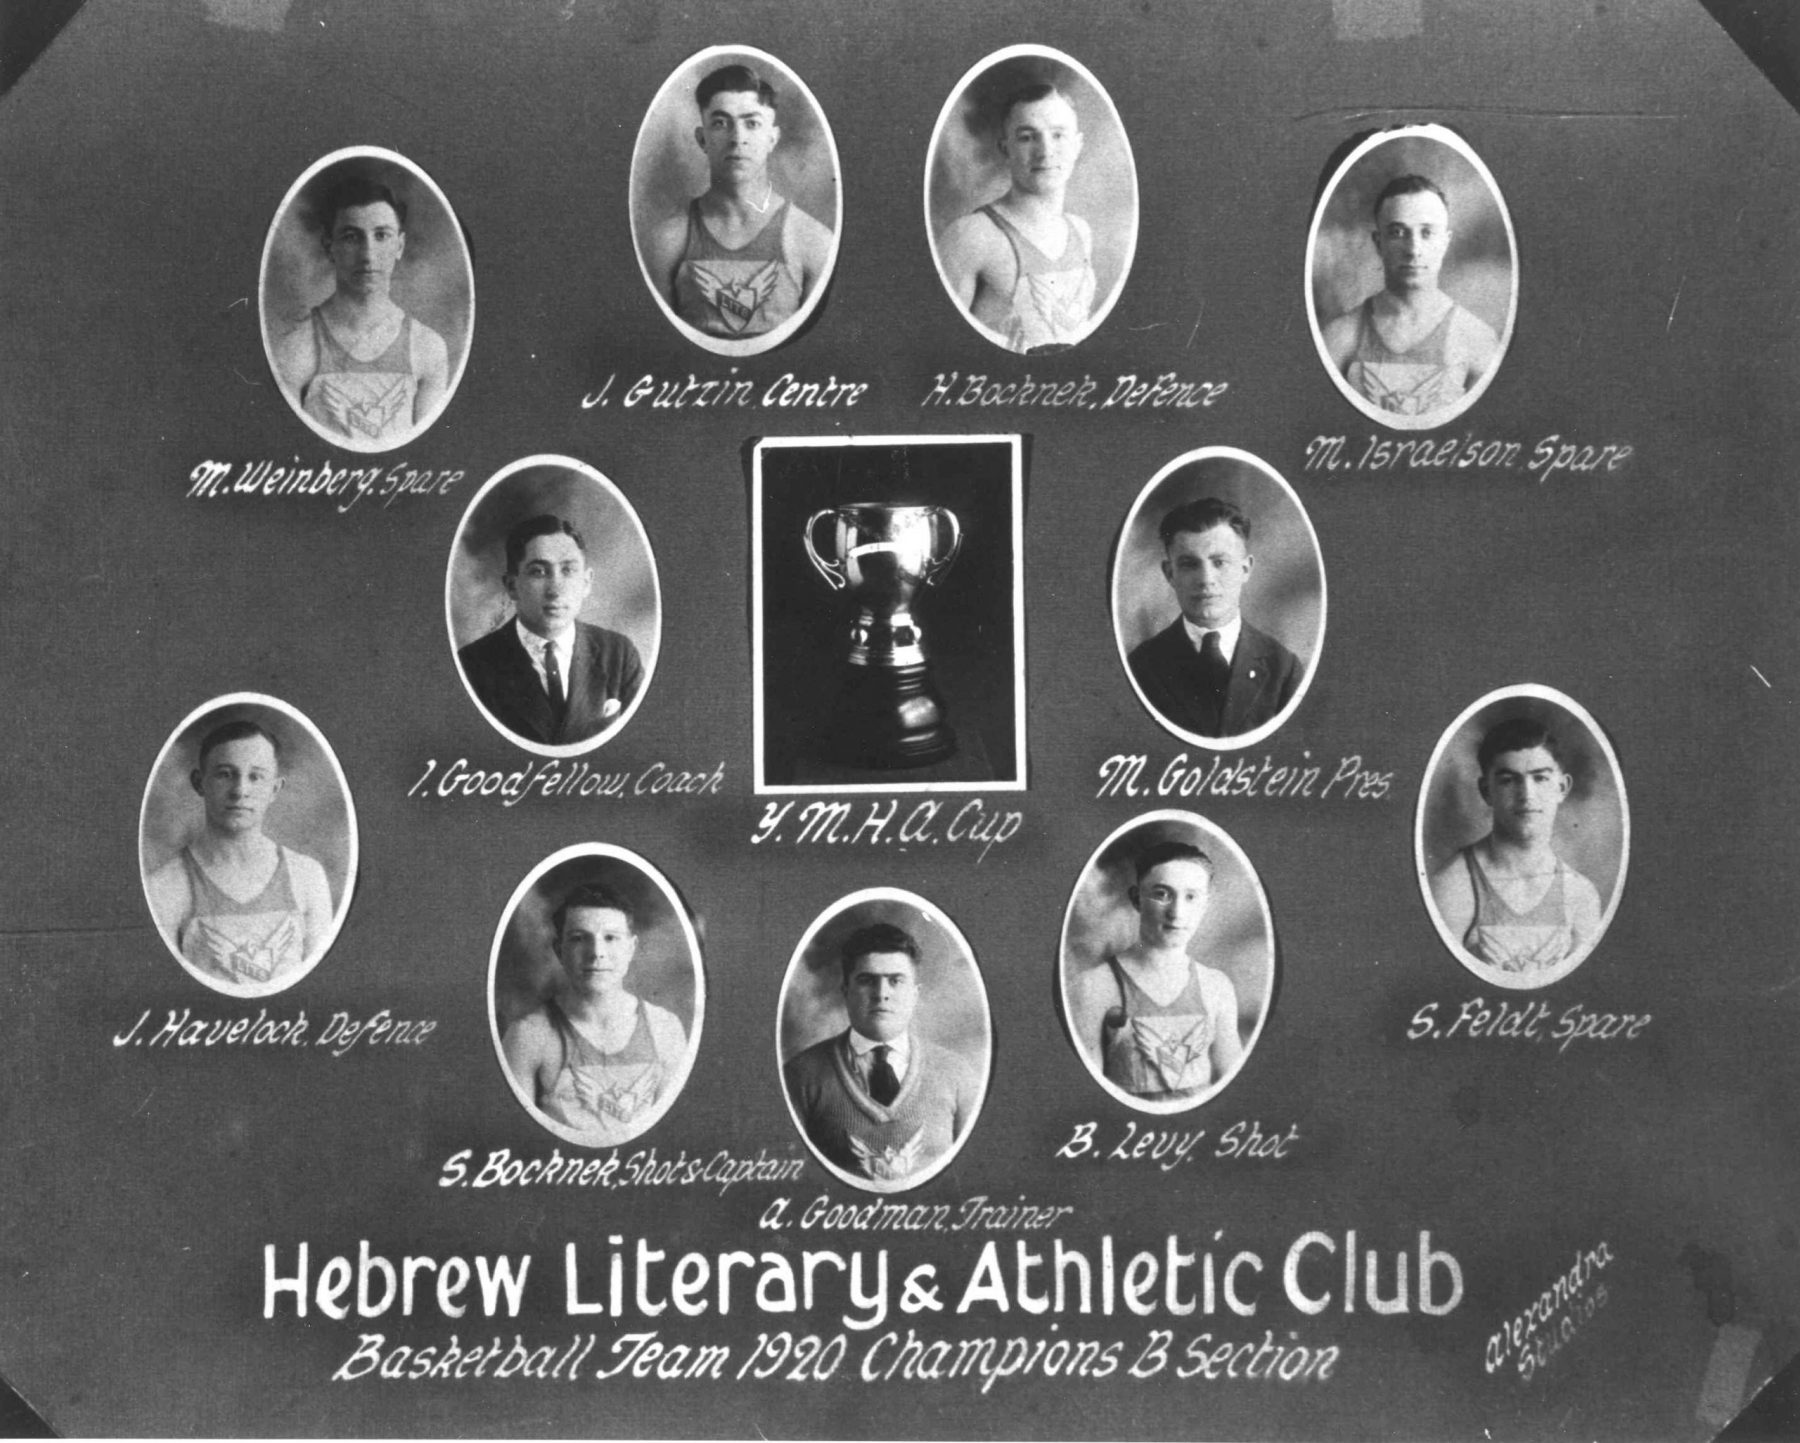 The Hebrew Literary and Athletic Club basketball team from 1920. The Hebrew Literary and Athletic Club was one of the earliest Jewish clubs in Toronto. They were formed in 1914 and, although their name would suggest otherwise, they had a purely athletic mandate. The Hebrew Literary and Athletic Club along with a few other Jewish clubs amalgamated to form an organization known as the Hebrew Association of Young Men's and Young Women's Clubs, the precursor to the YMHA.  OJA, item 1773.